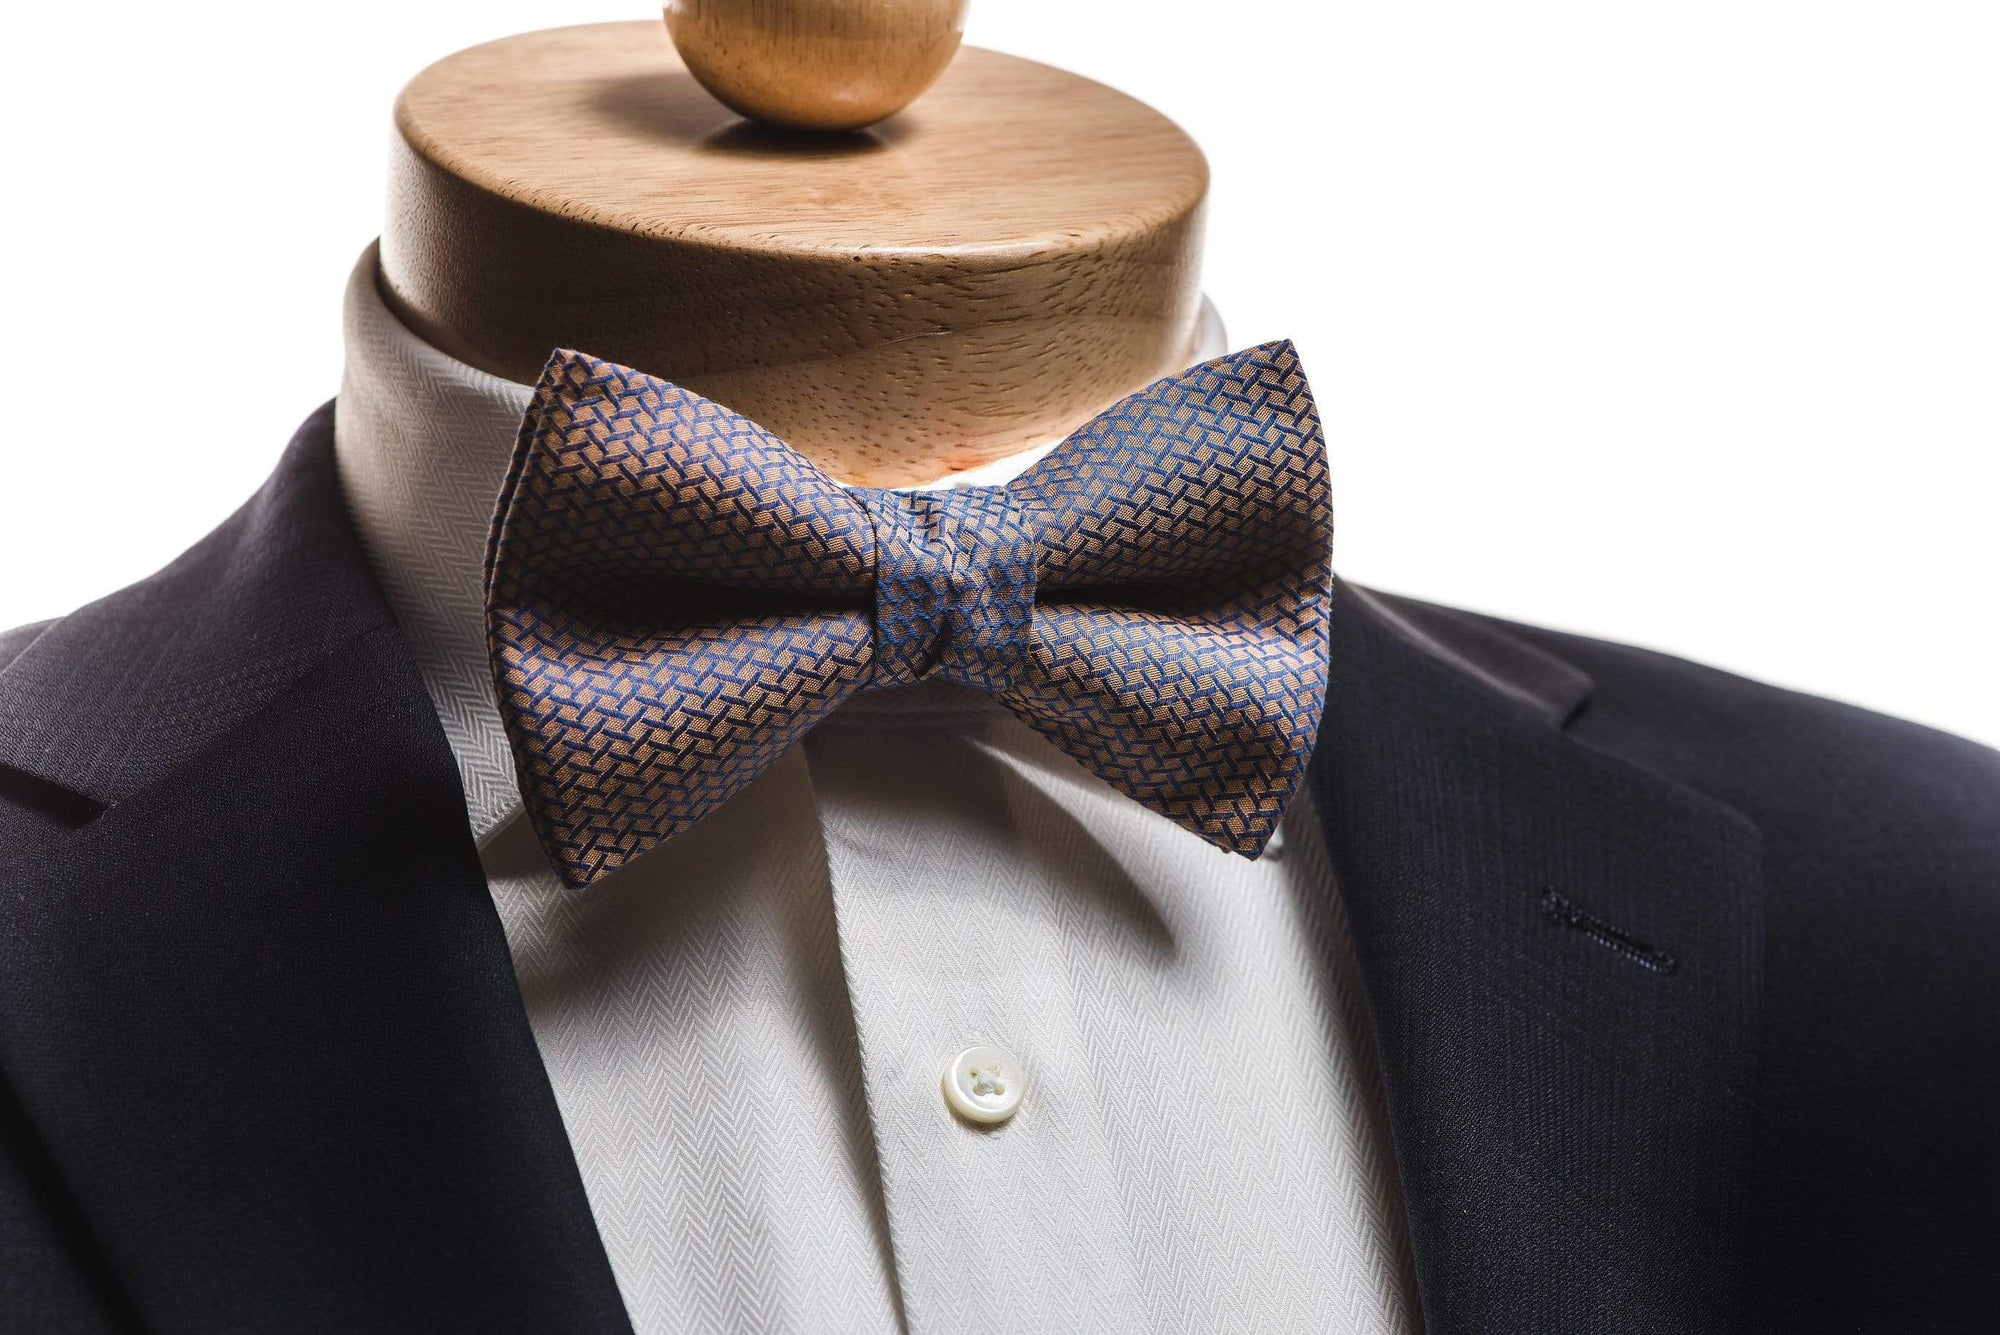 How Is A Handmade Bespoke Bowtie Crafted?